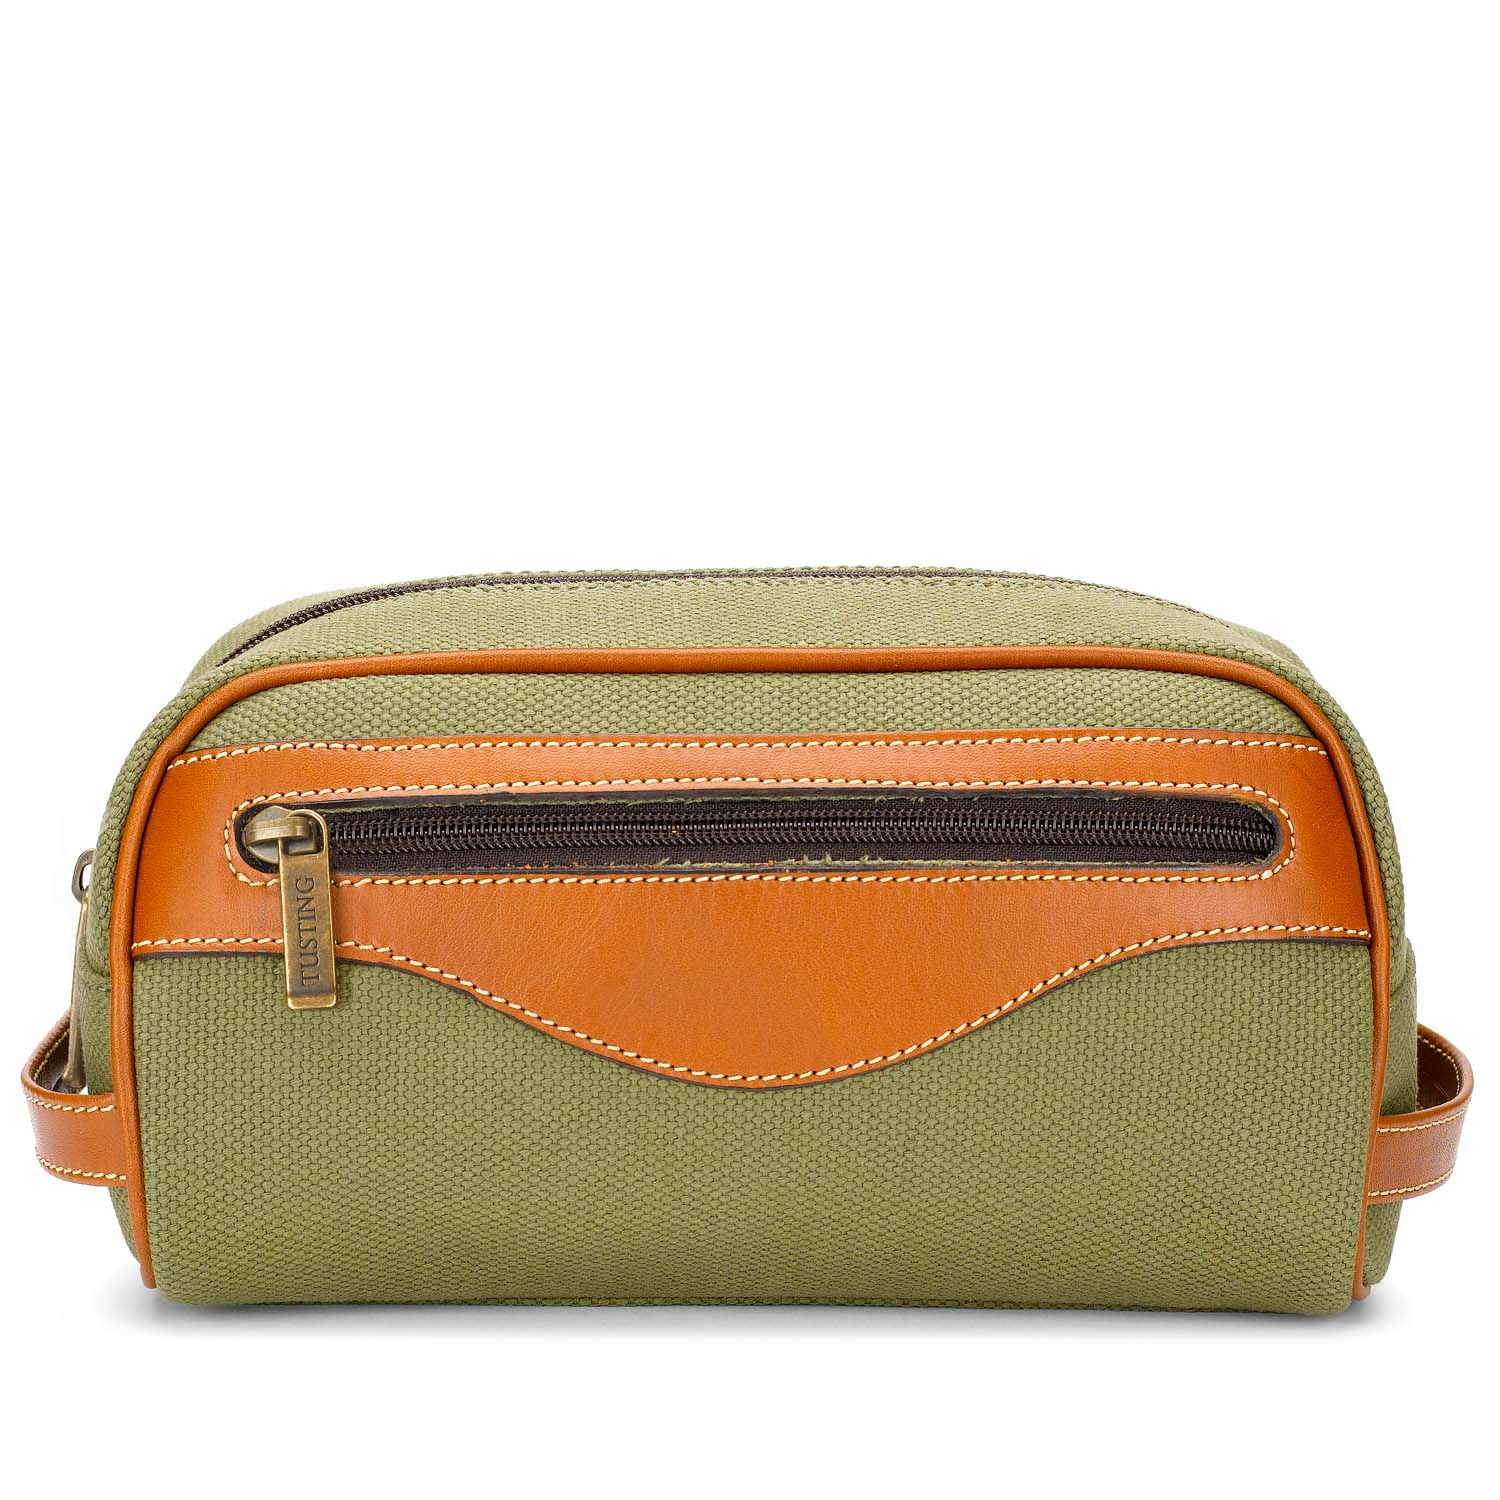 Tusting Excursion Washbag in Canvas and Leather